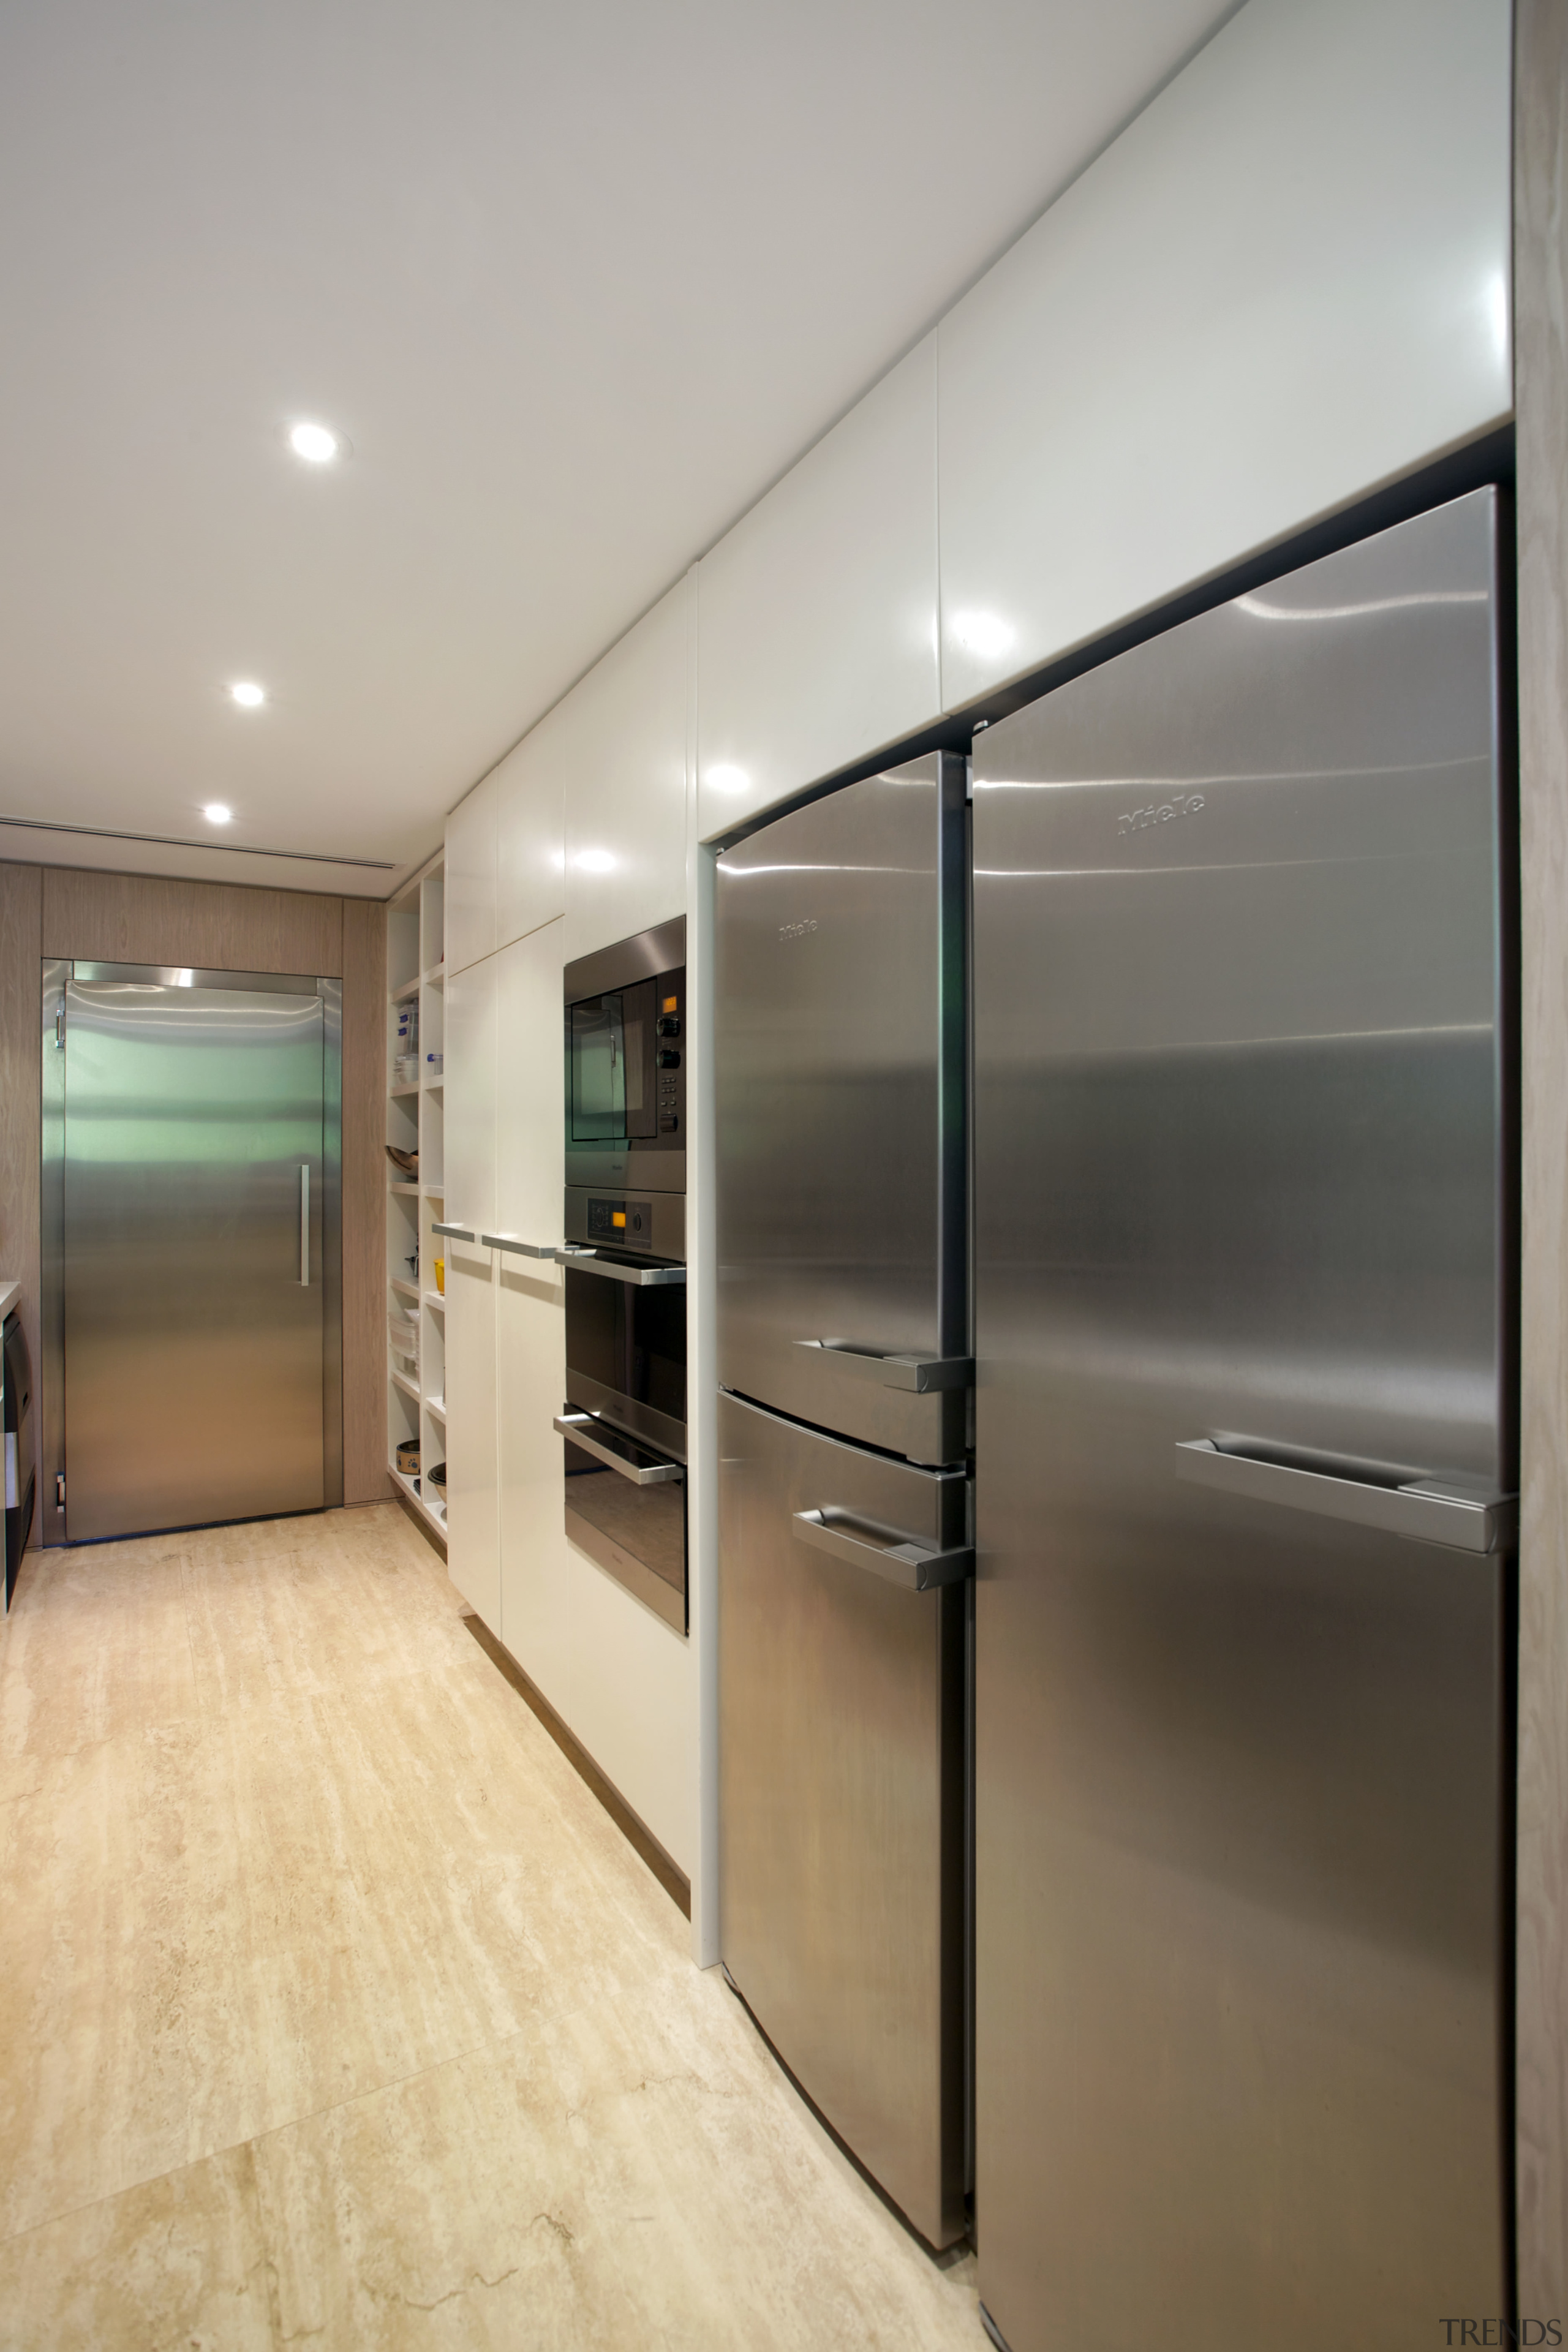 A second kitchen in this renovated house runs cabinetry, interior design, kitchen, real estate, gray